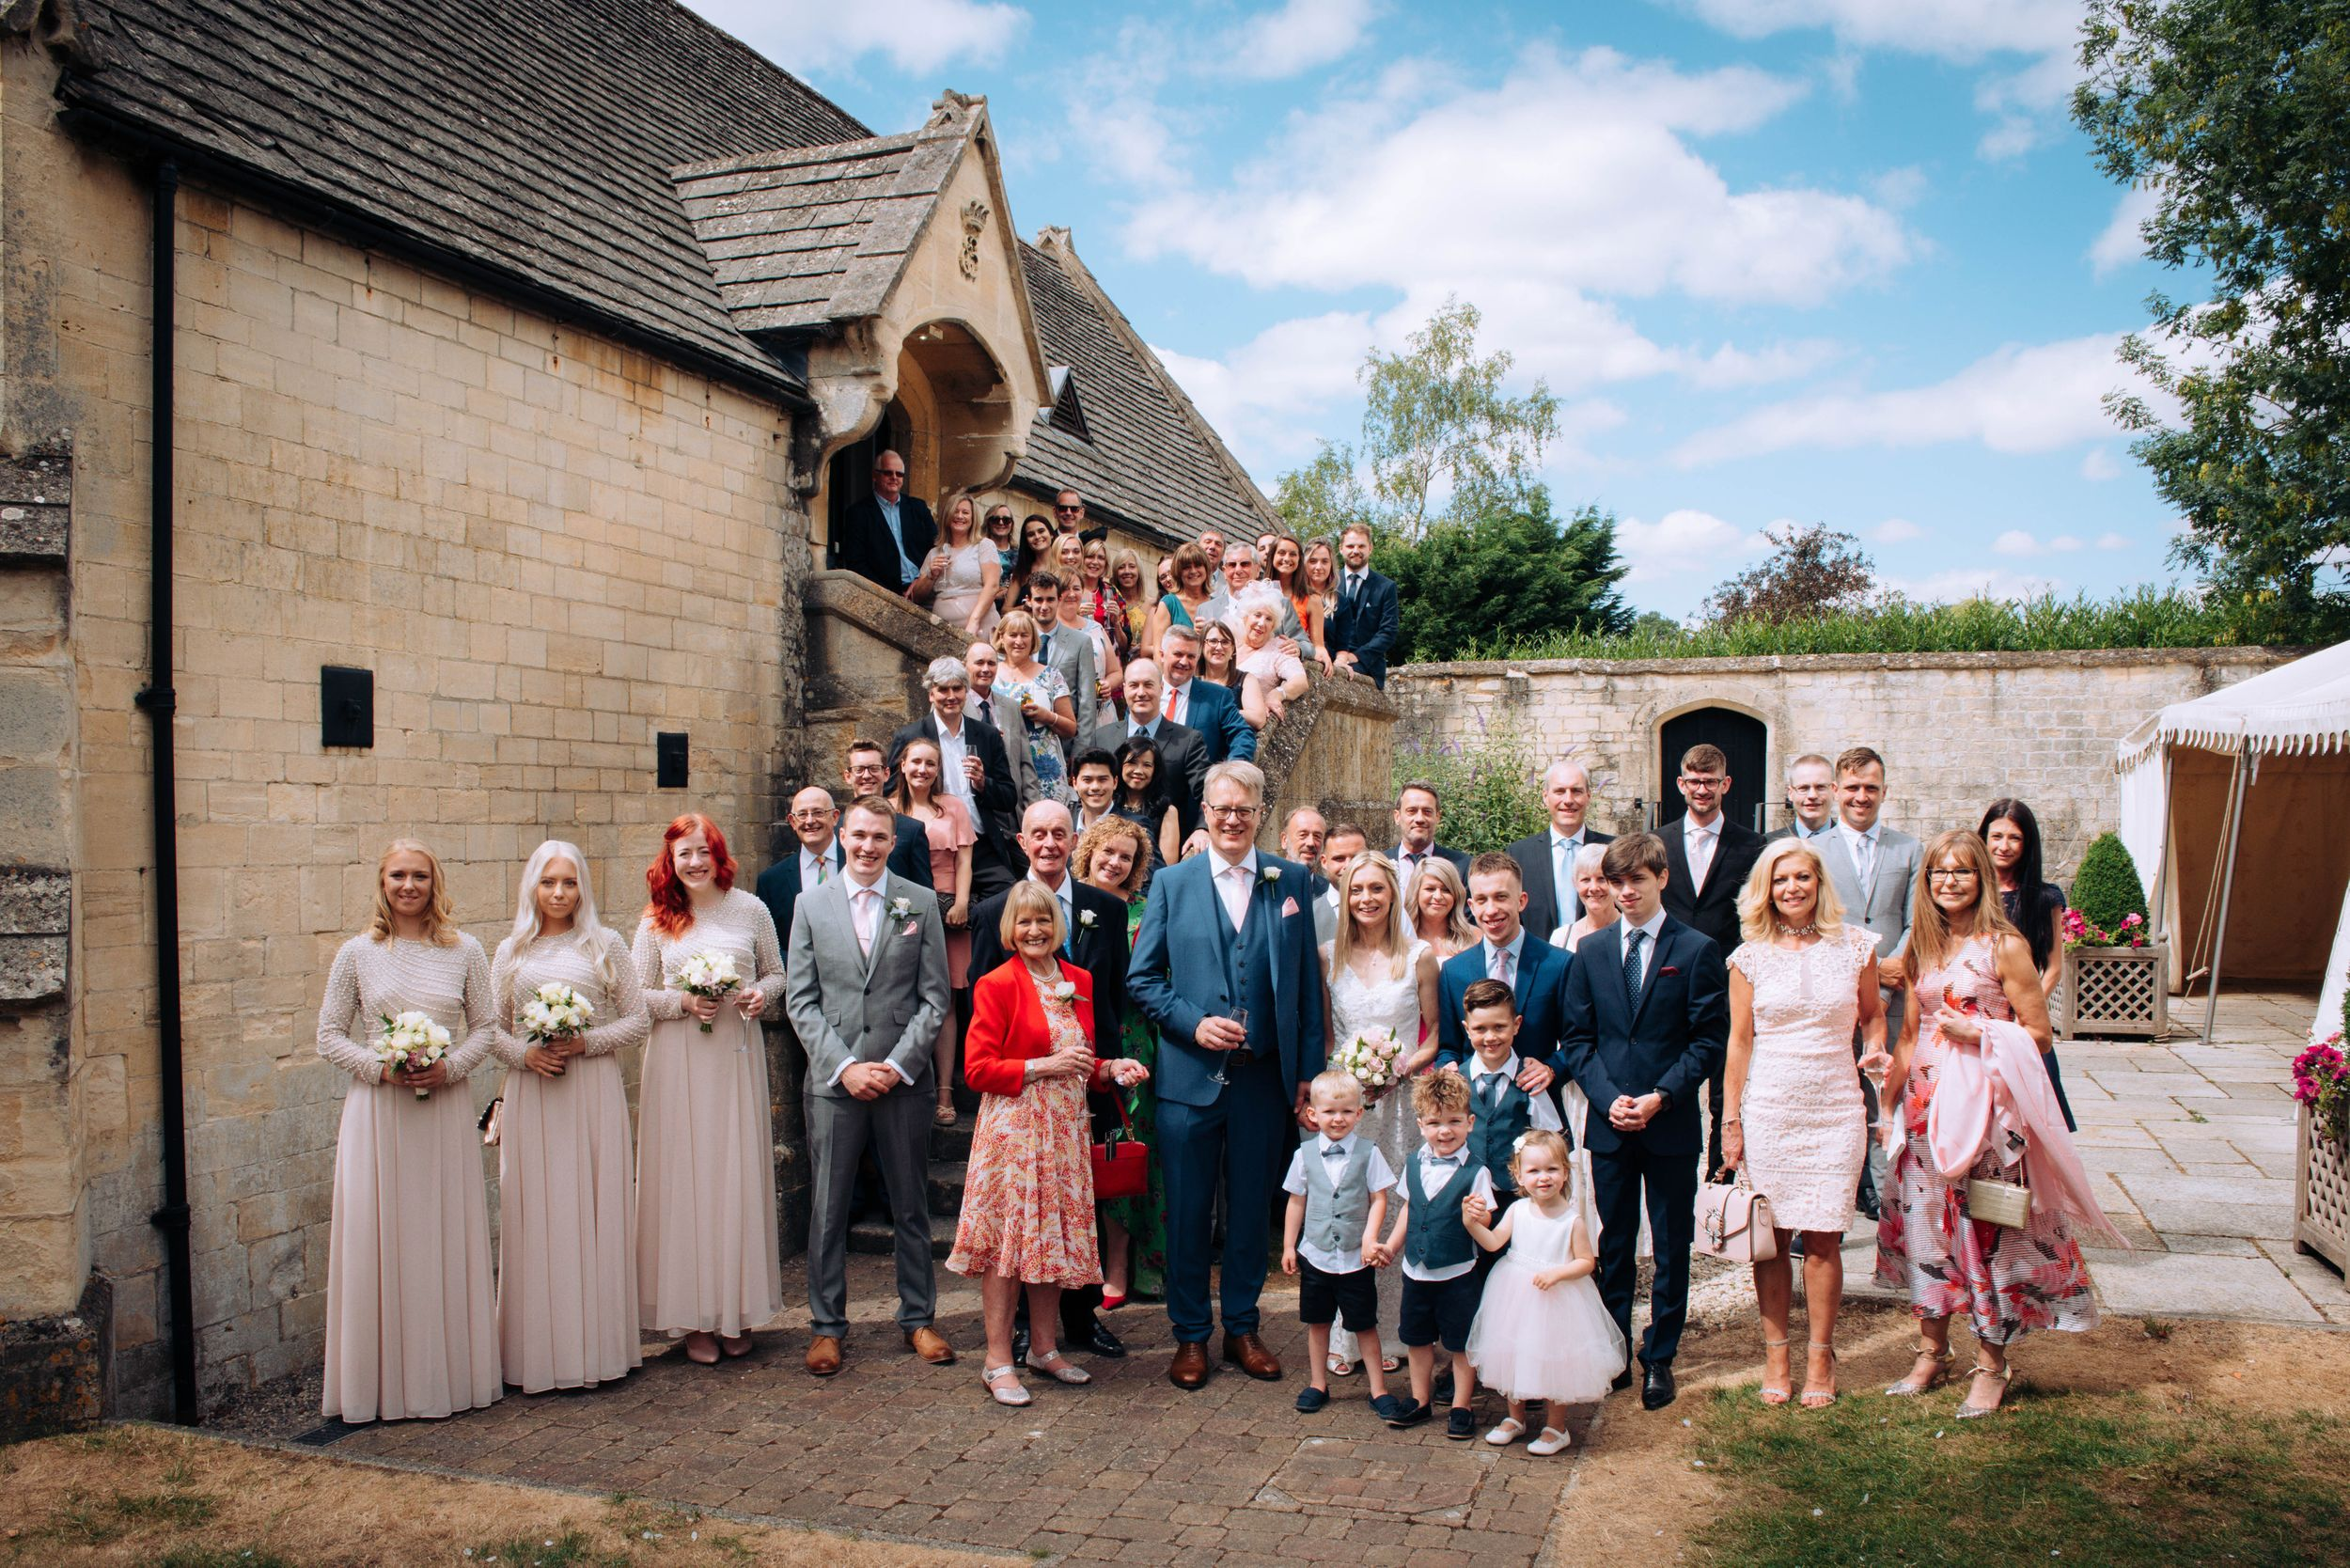 Zara Davis Wedding Photography near Stroud, Gloucestershire in the Cotswolds Ellenborough Park group photo